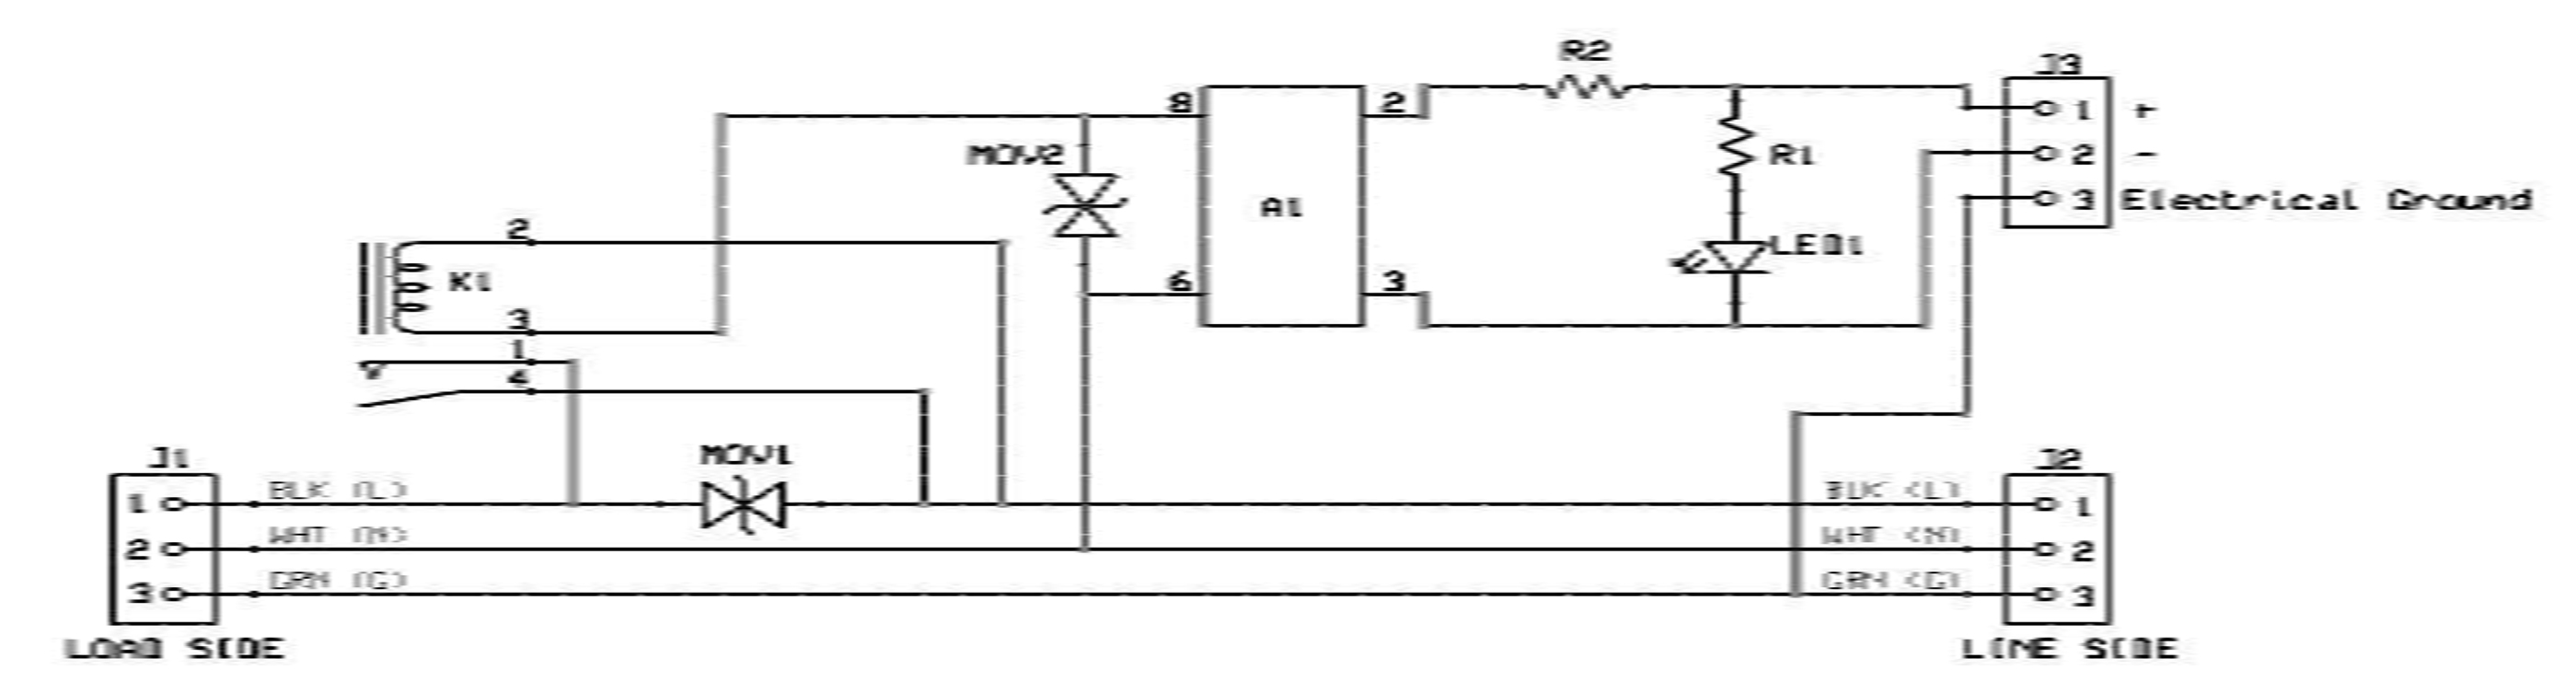 Drivers Relays And Solid State Mbed Current A Latching Circuit That Controls The Gate Of Mosfet Power Switch Tail Ii Schematic